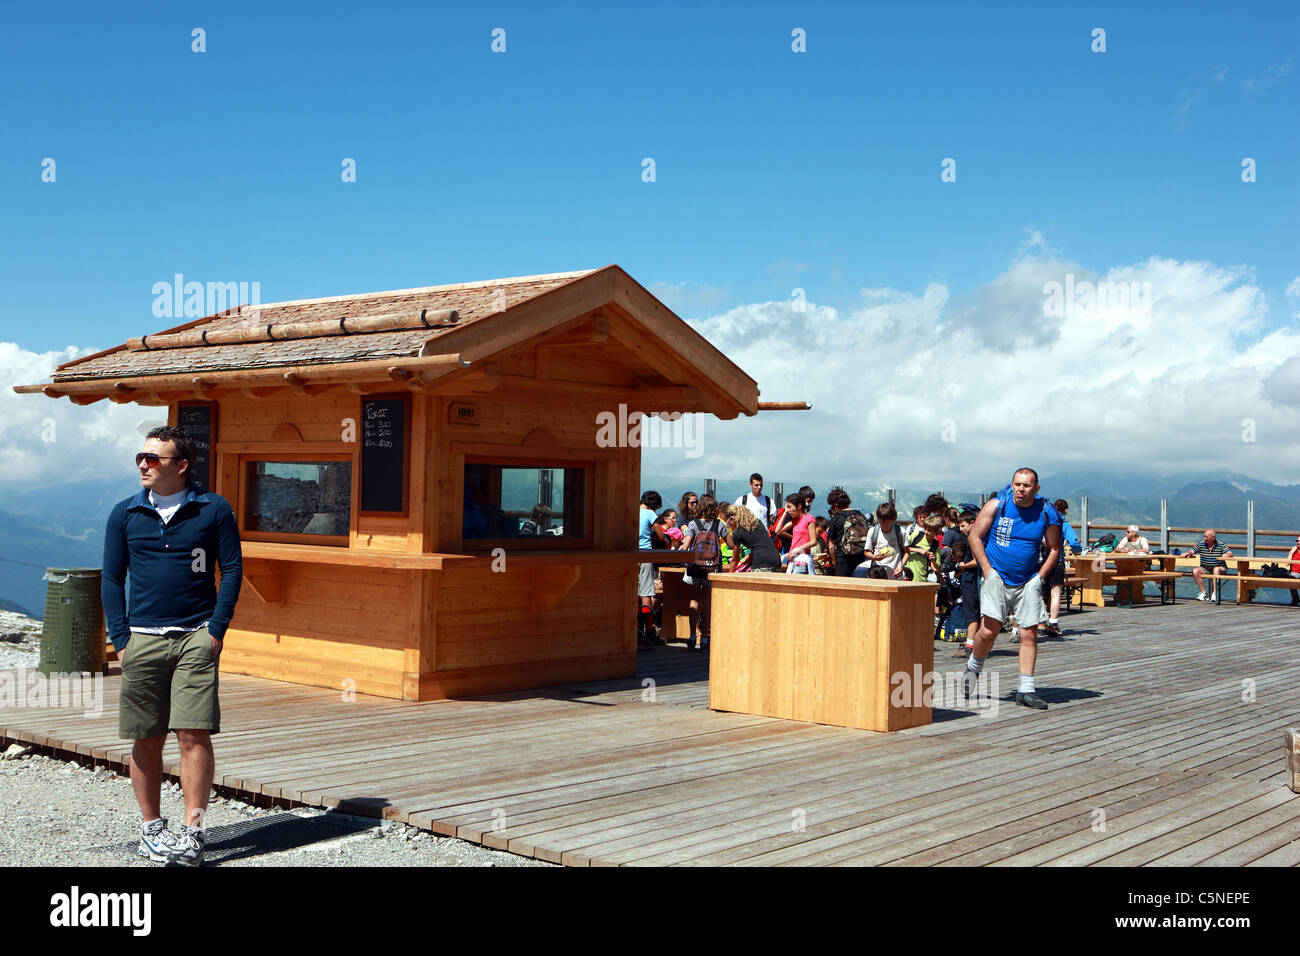 Outdoor seating area at Passo del Groste the gondola top station at 2442m in the Italian Brenta Dolomites - Stock Image